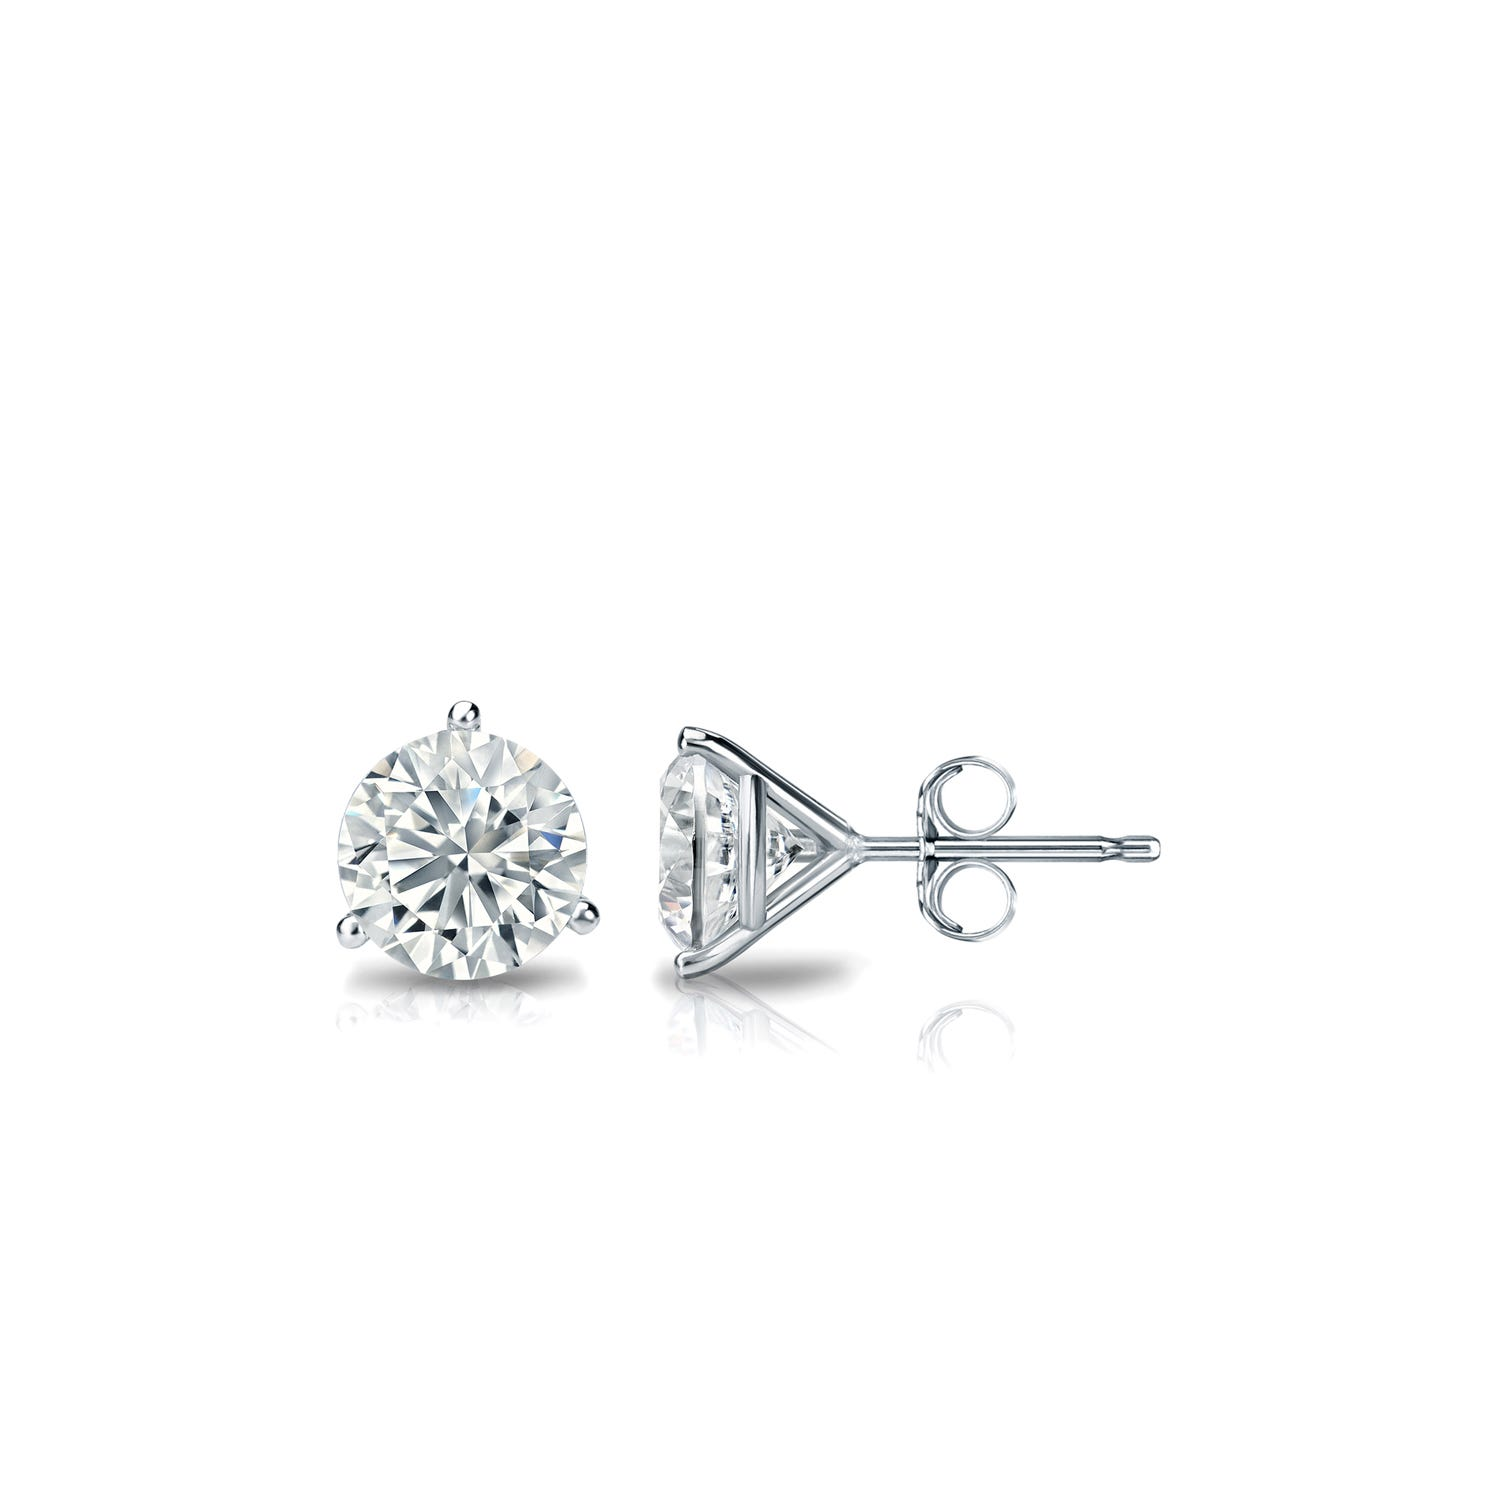 3/8 CTTW Round Diamond Solitaire Stud Earrings IJ I2 in Platinum 3-Prong Setting